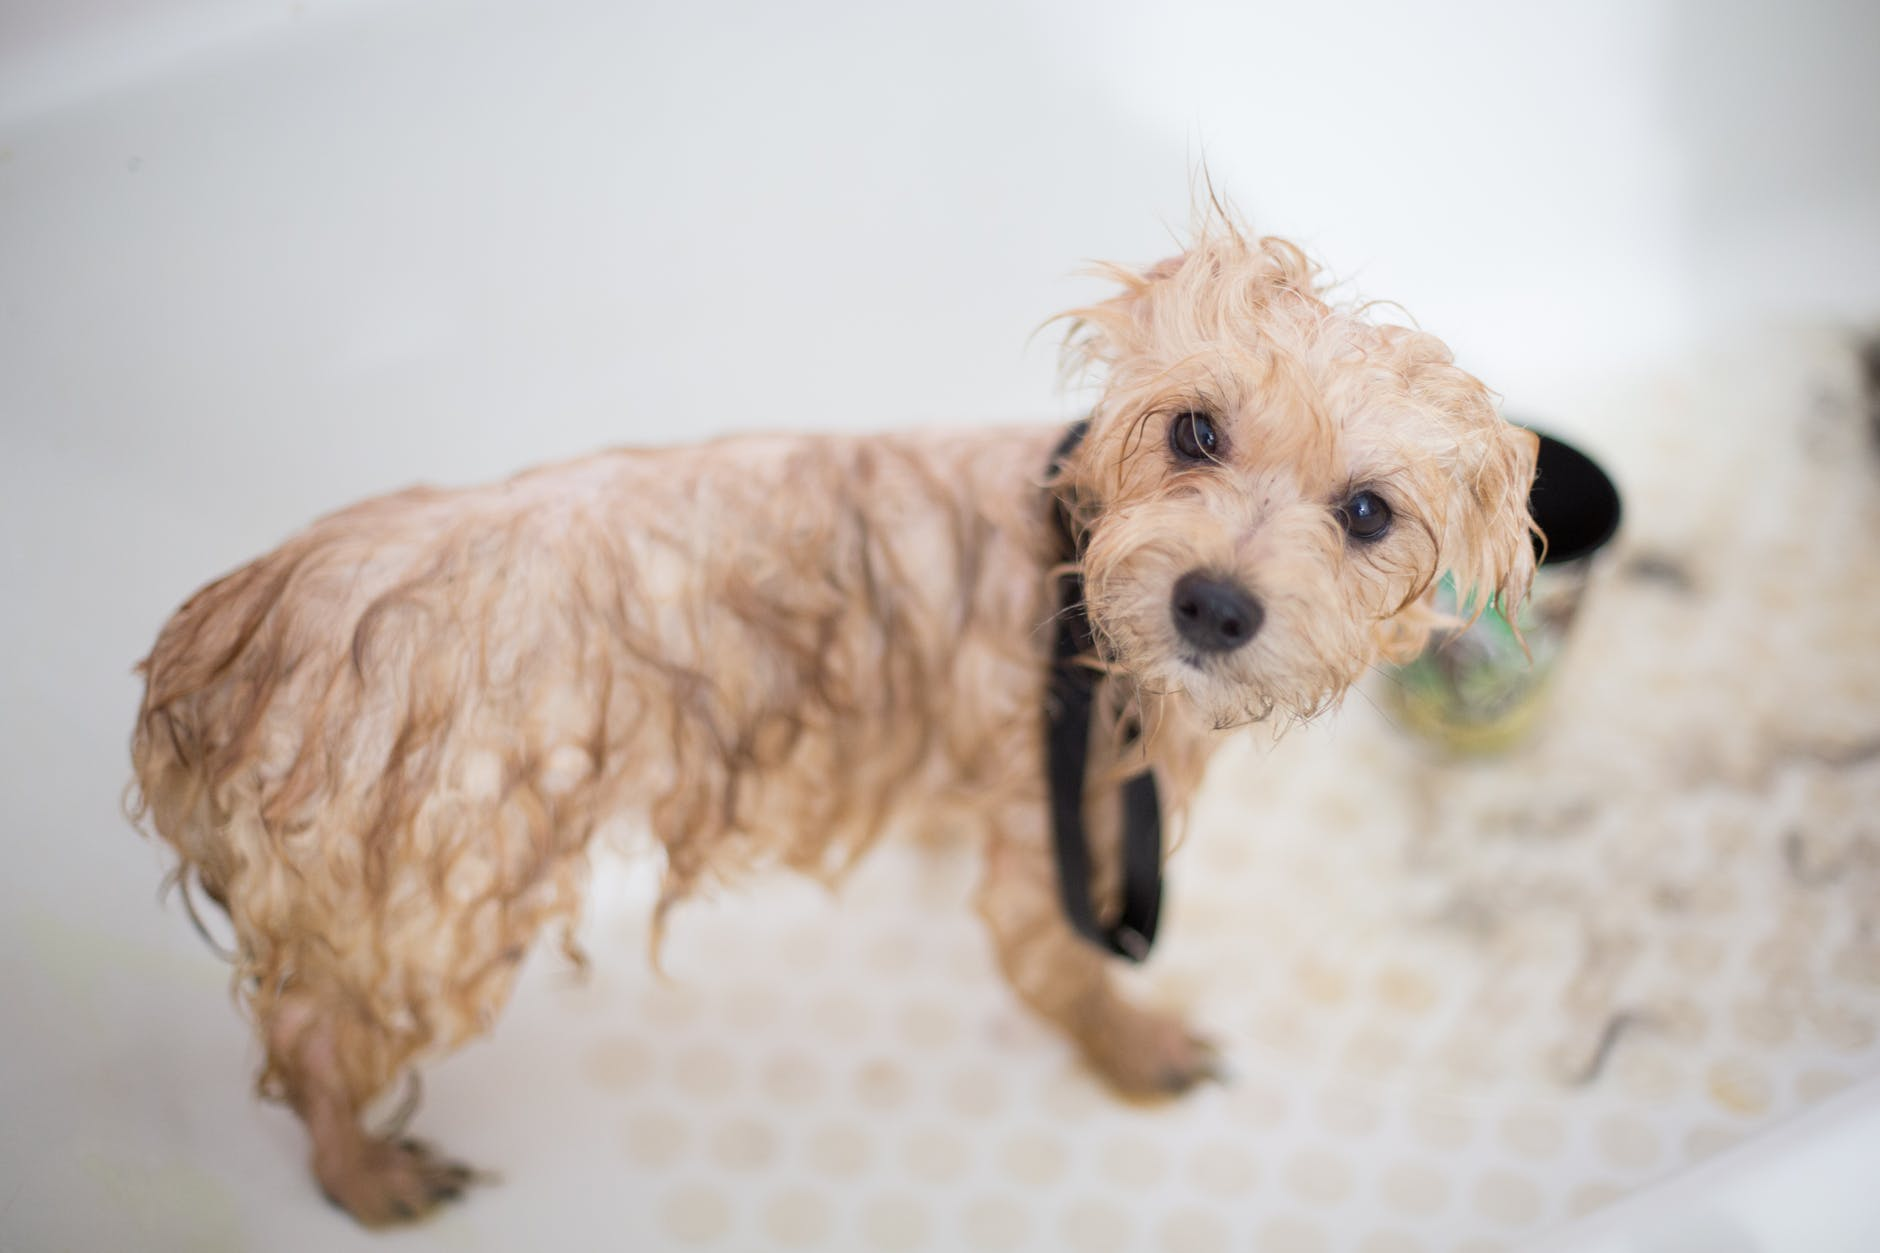 Pet Soap: Keep The Pet Clean And Shiny